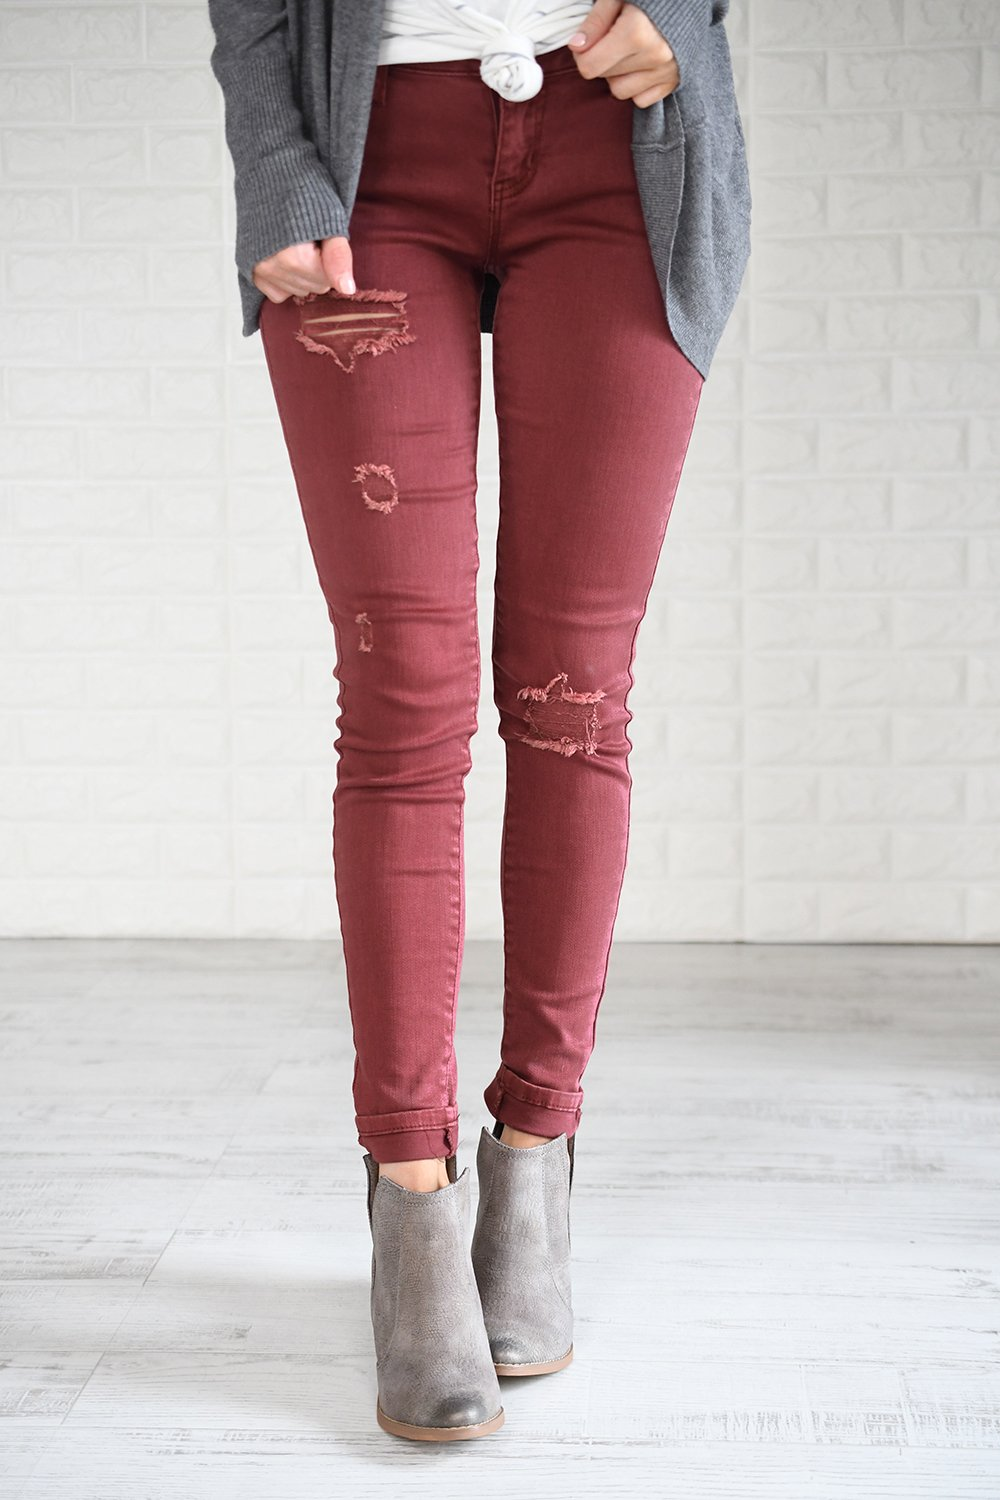 Distressed Burnt Maroon Calypso Pants